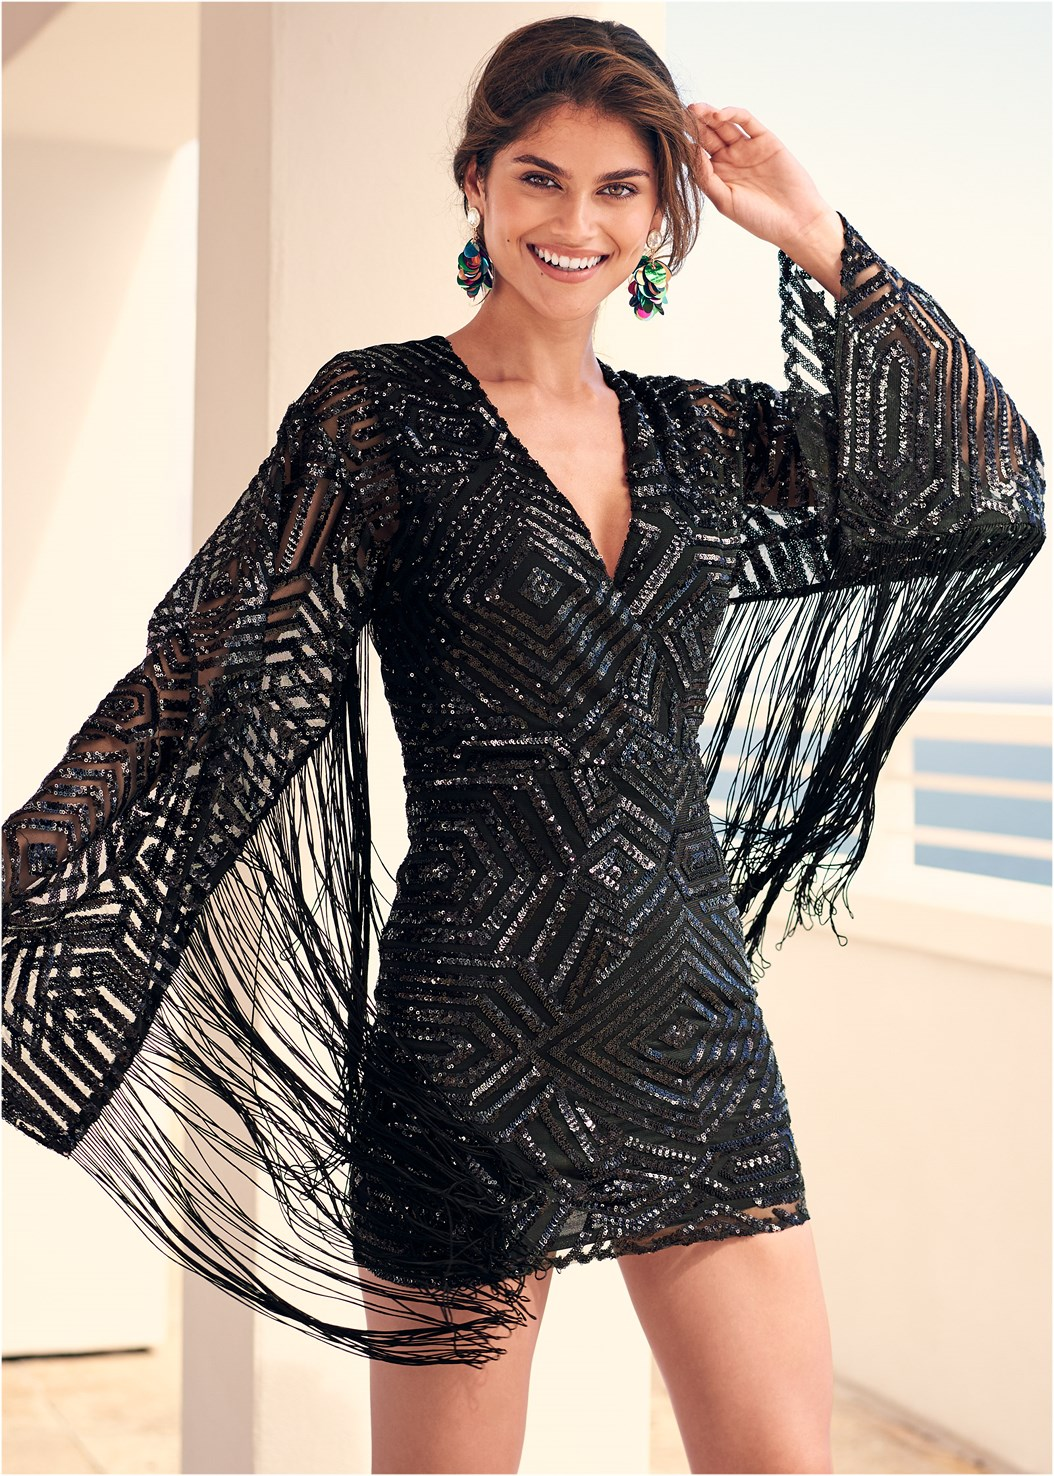 Fringe Sleeve Sequin Dress,Cut Out Detail Boots,Jewel Fringe Earrings,Stud Detail Crossbody